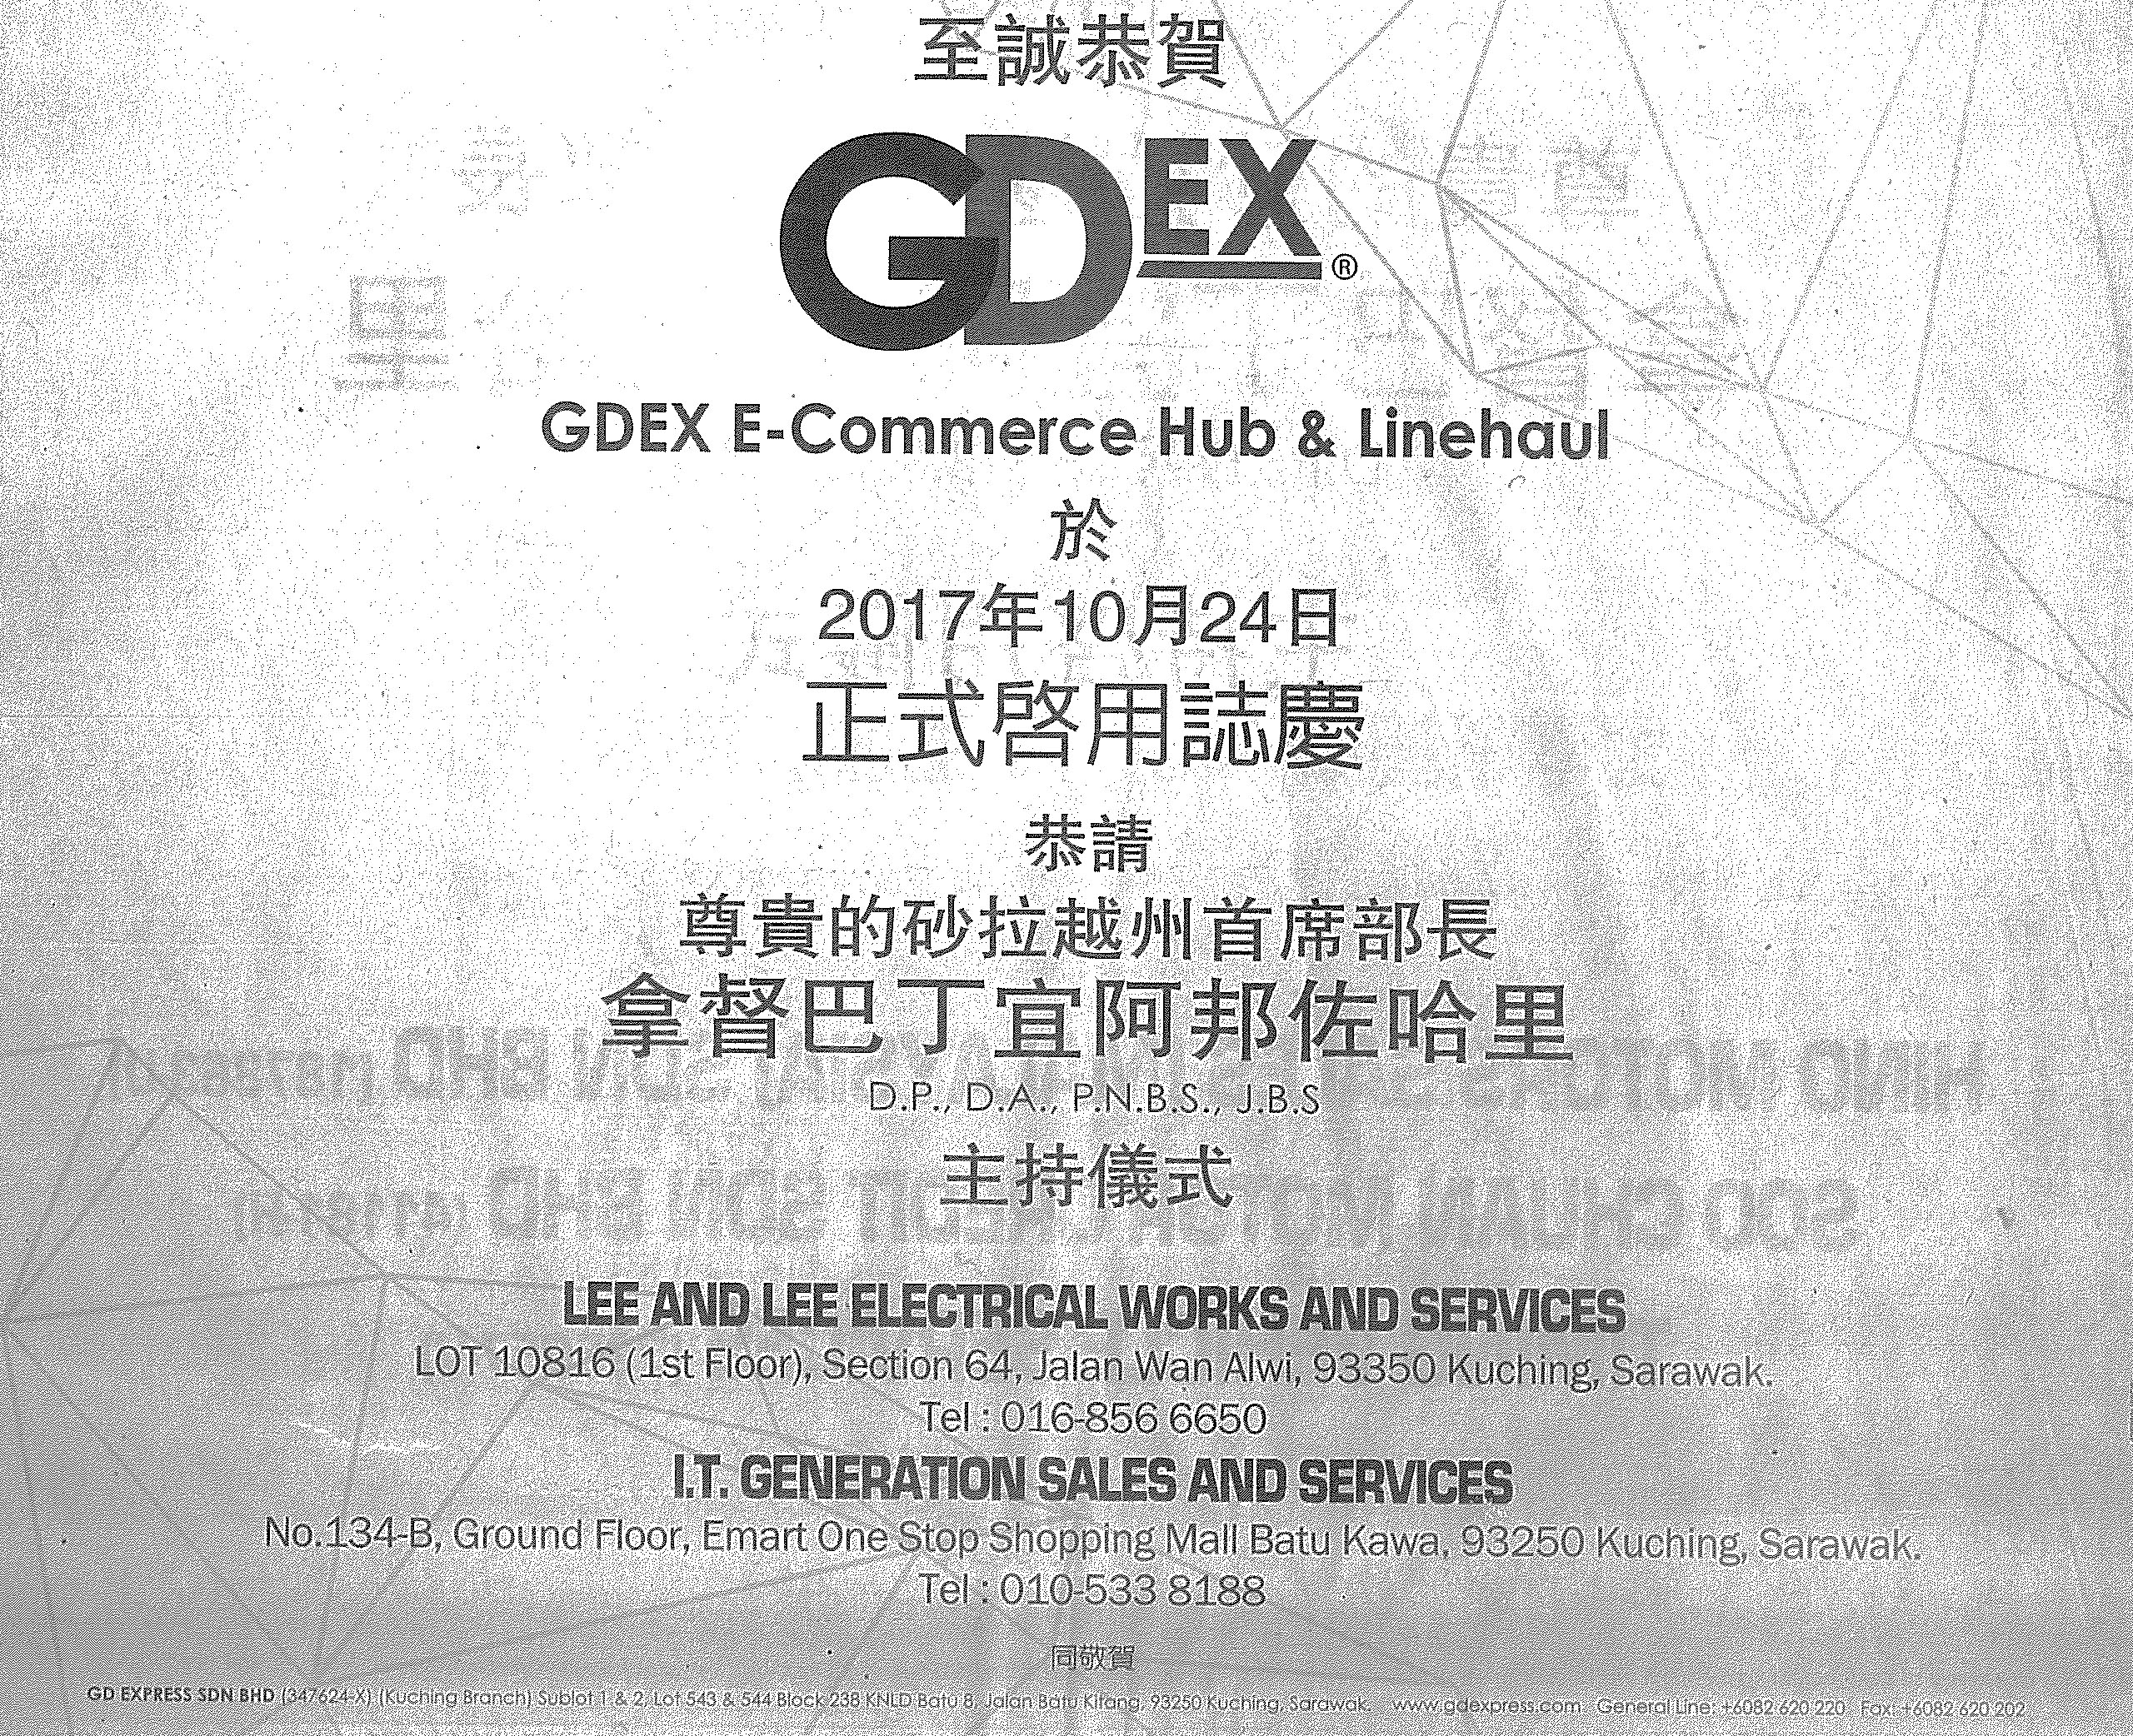 See Hua Daily - Heartiest to GDEX